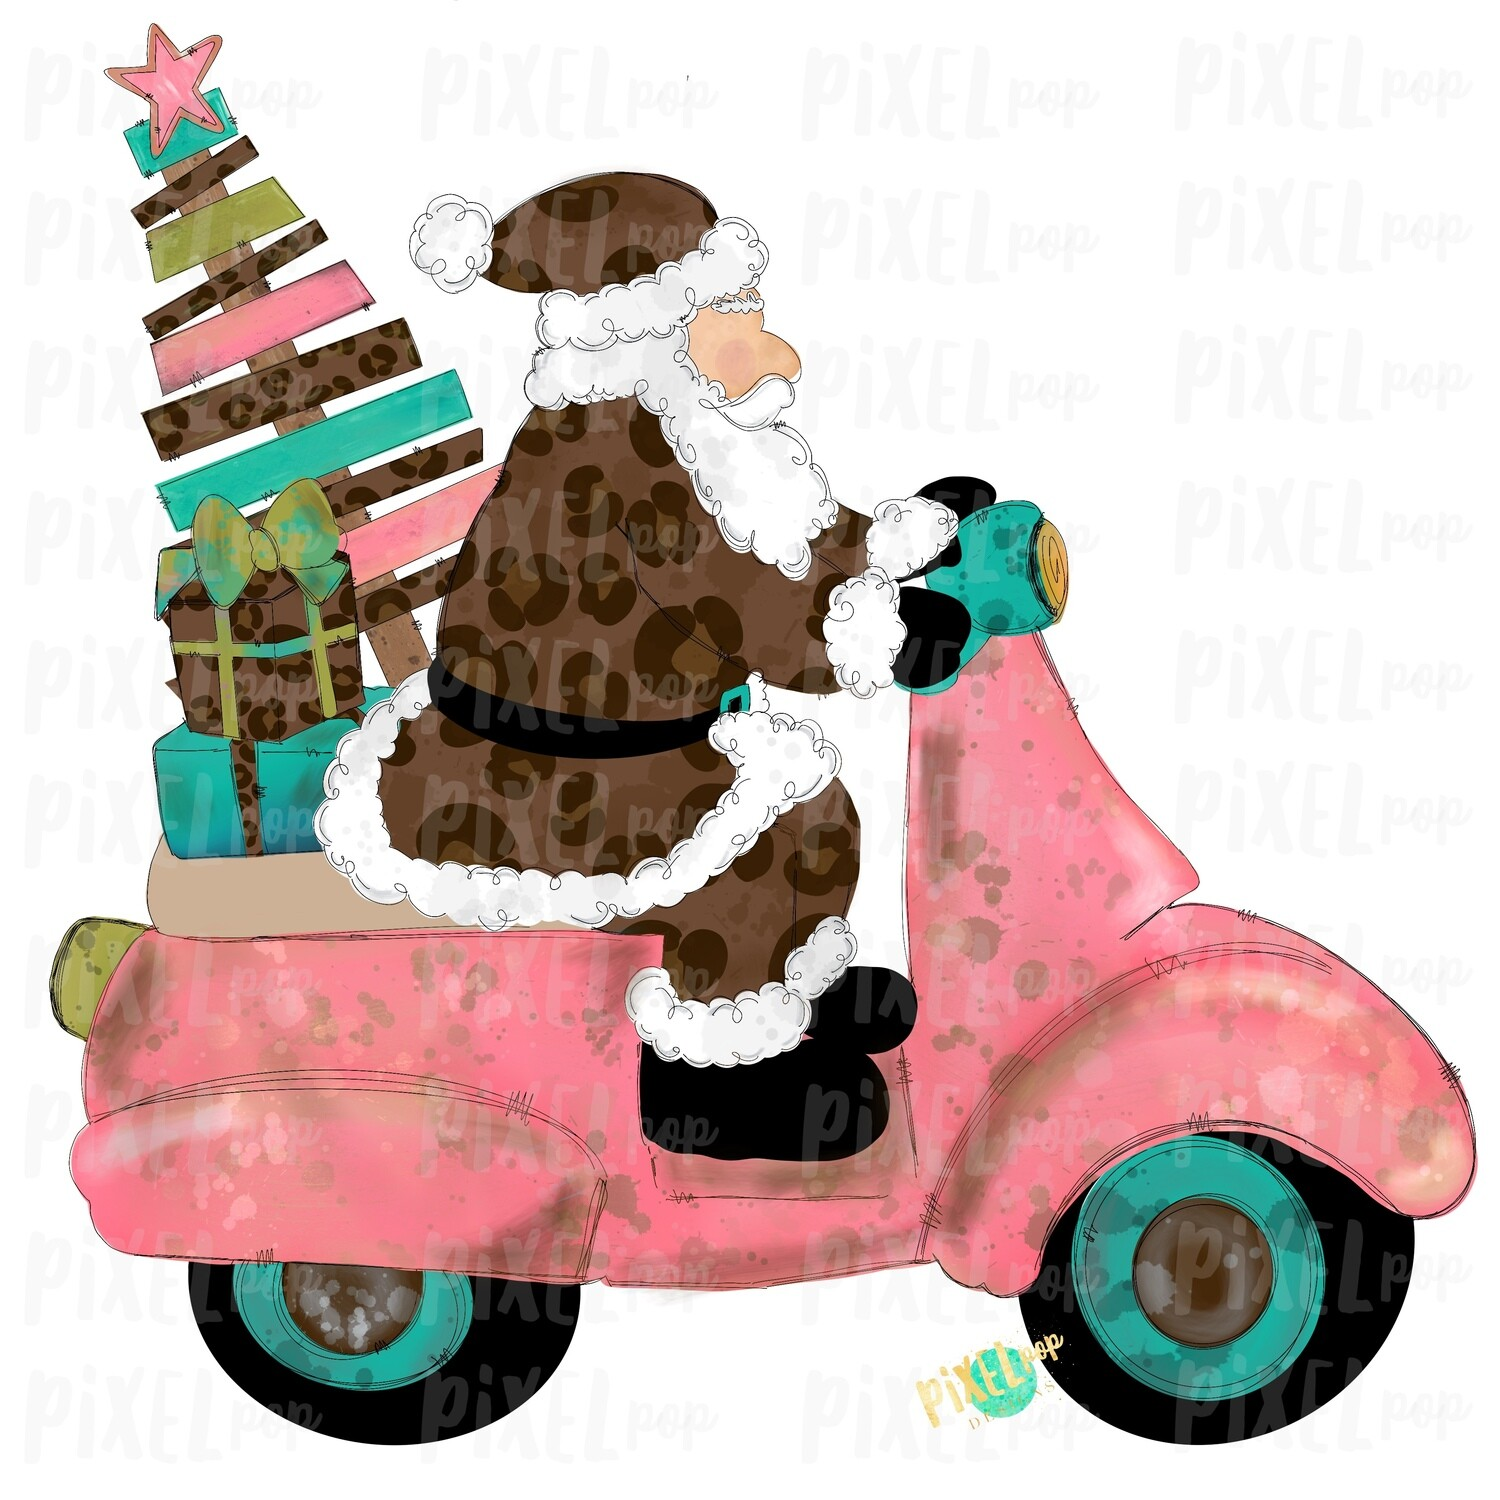 Moped Santa Leopard Sublimation PNG | Hand Drawn Art Sublimation PNG | Digital Download | Printable Artwork | Art